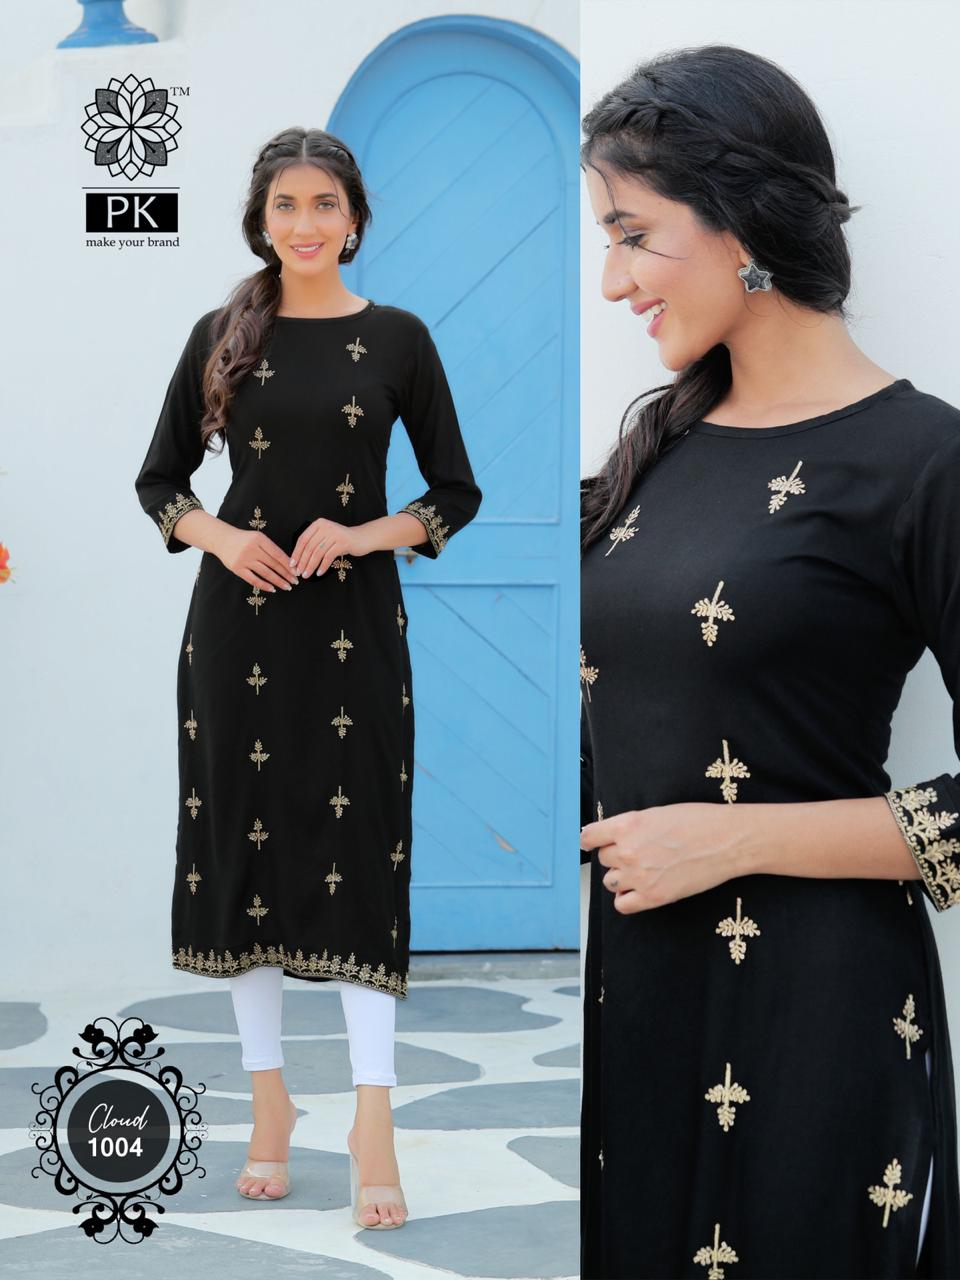 Pk Fashion Cloud Vol 1 Kurti Wholesale Catalog 6 Pcs 6 - Pk Fashion Cloud Vol 1 Kurti Wholesale Catalog 6 Pcs